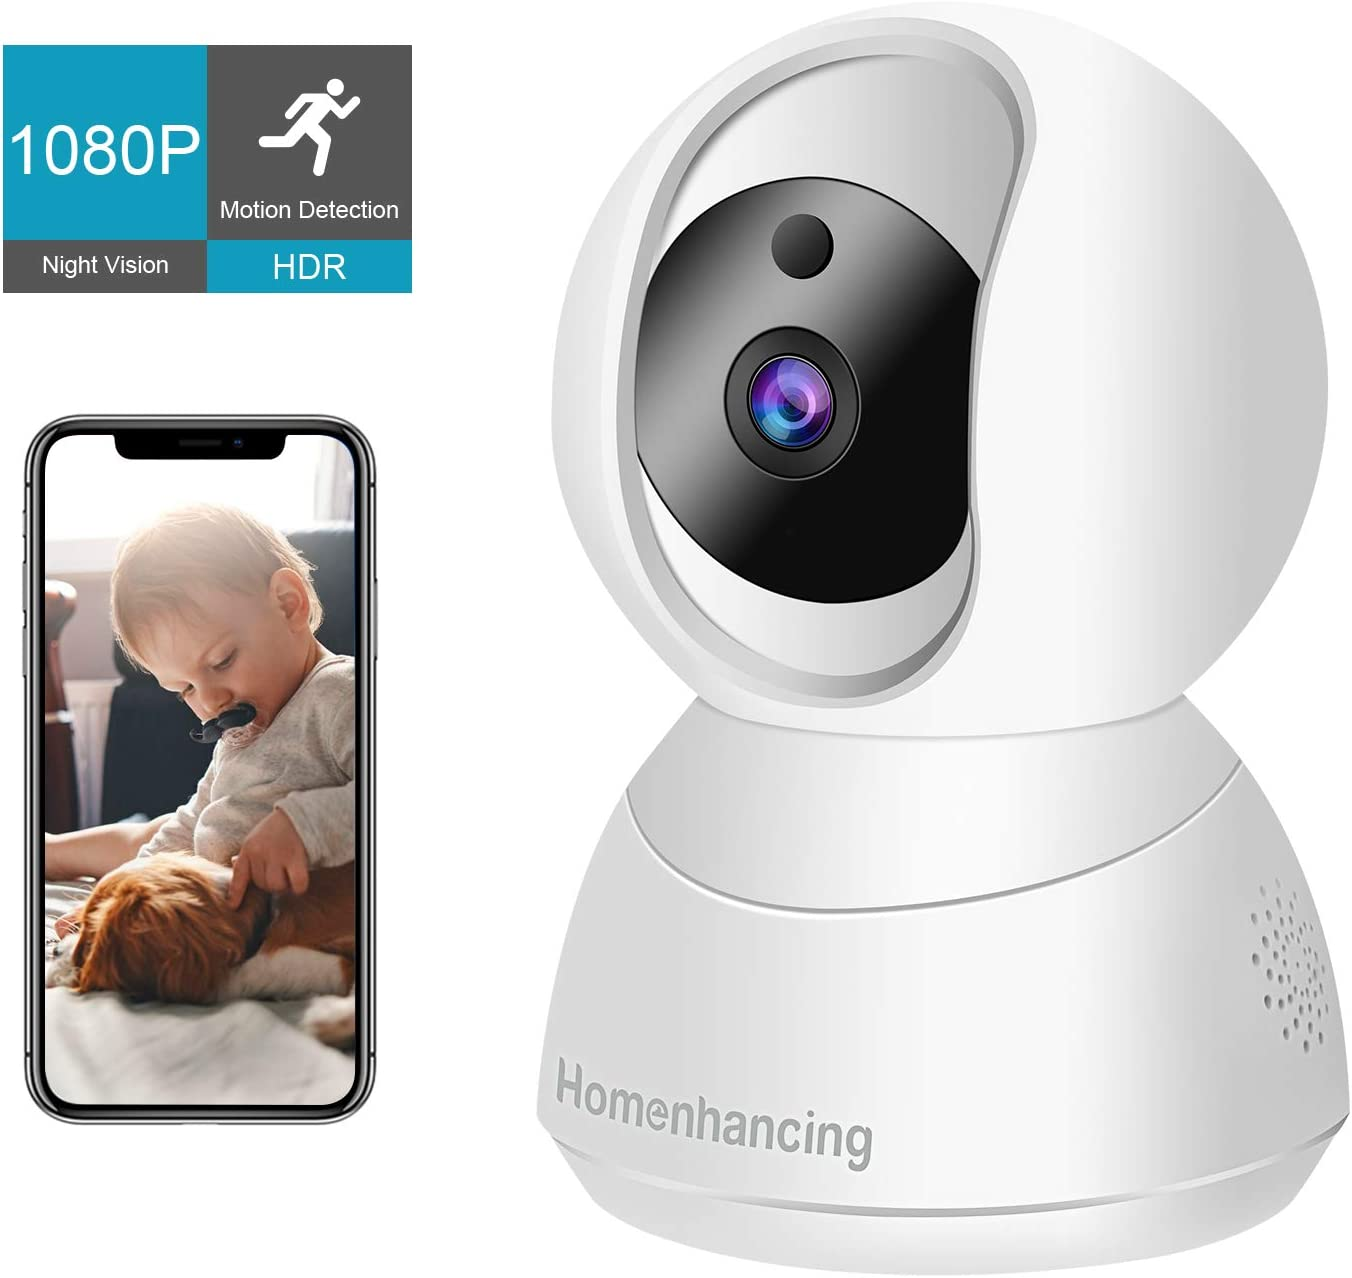 Amazon coupon code for 1080P Wireless Dog Camera Home